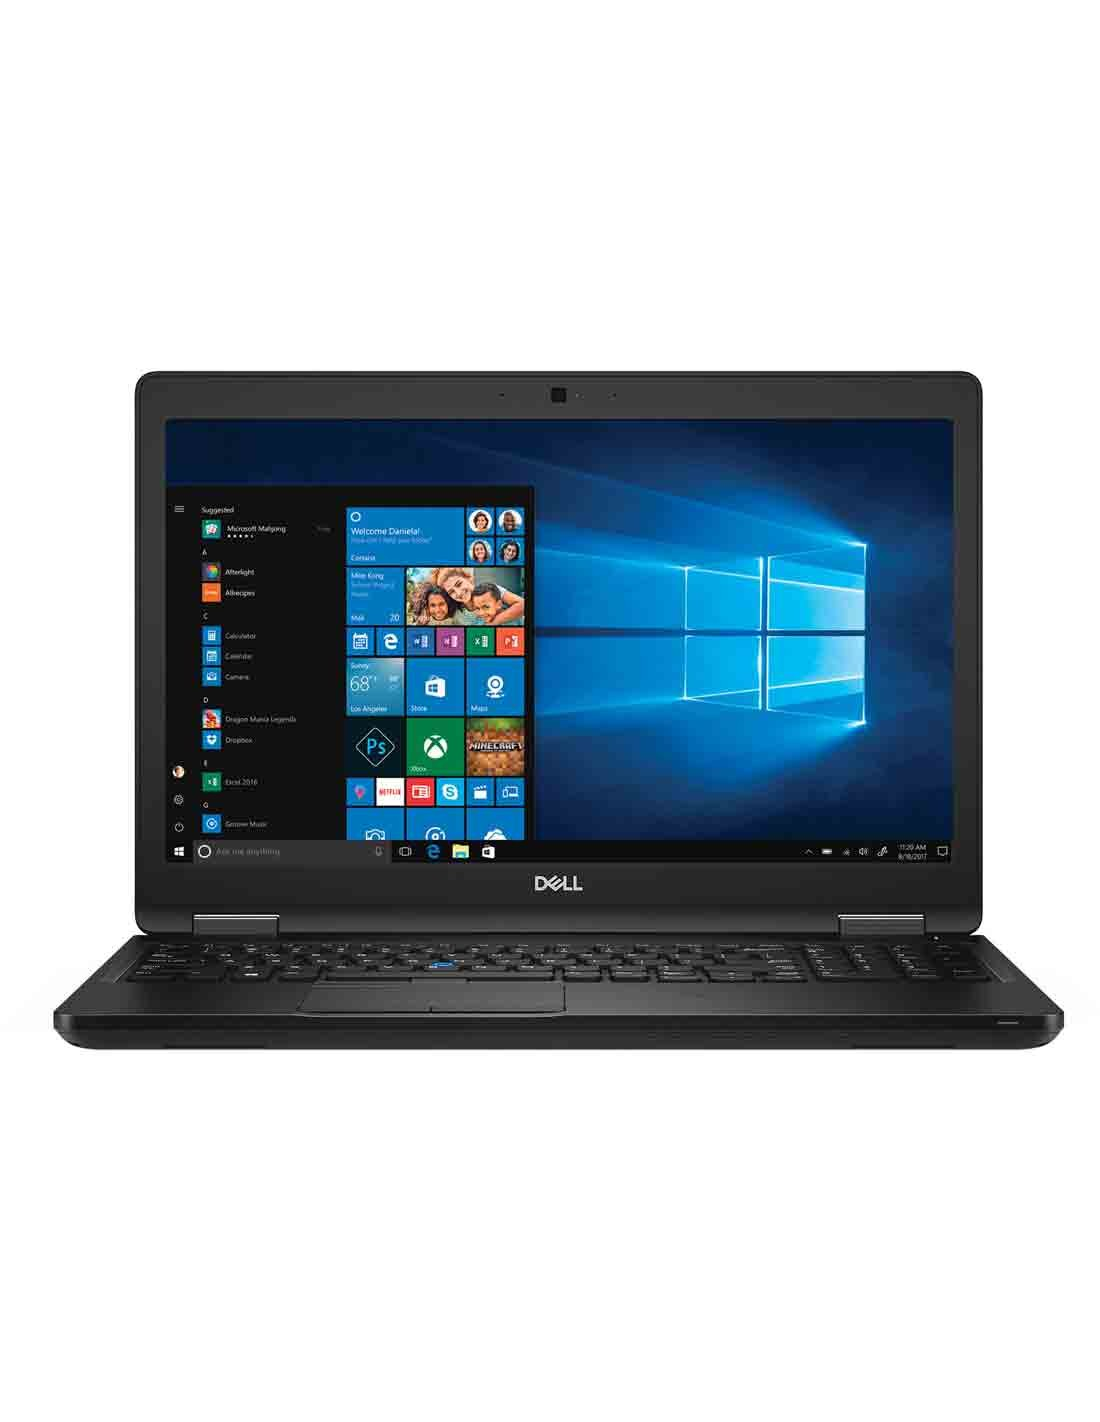 Dell Latitude 5590 Laptop images and photos in Dubai computer store